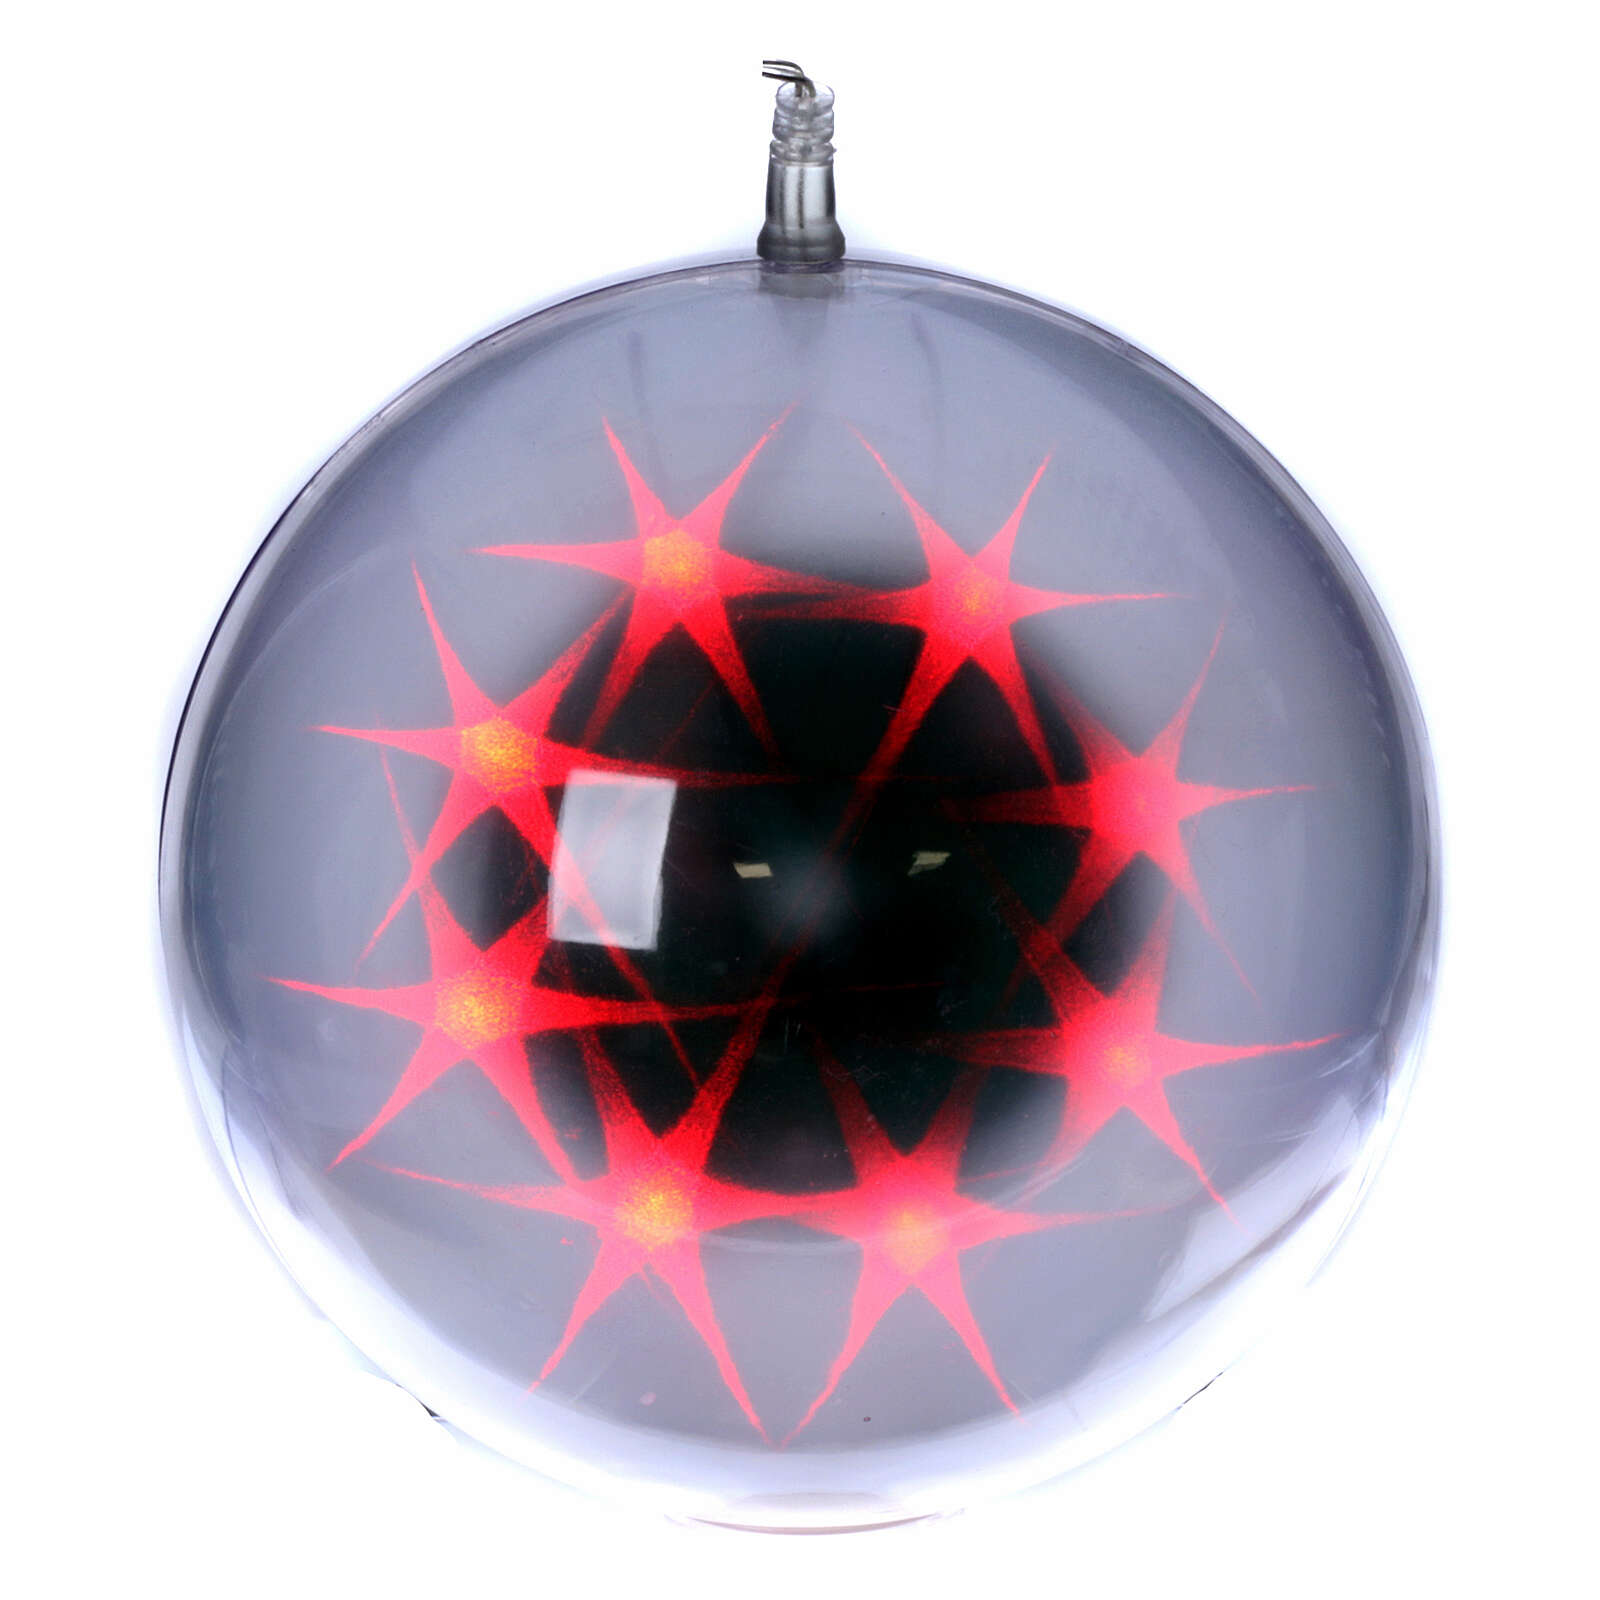 Christmas sphere light 48 leds 20 cm diameter internal use 3